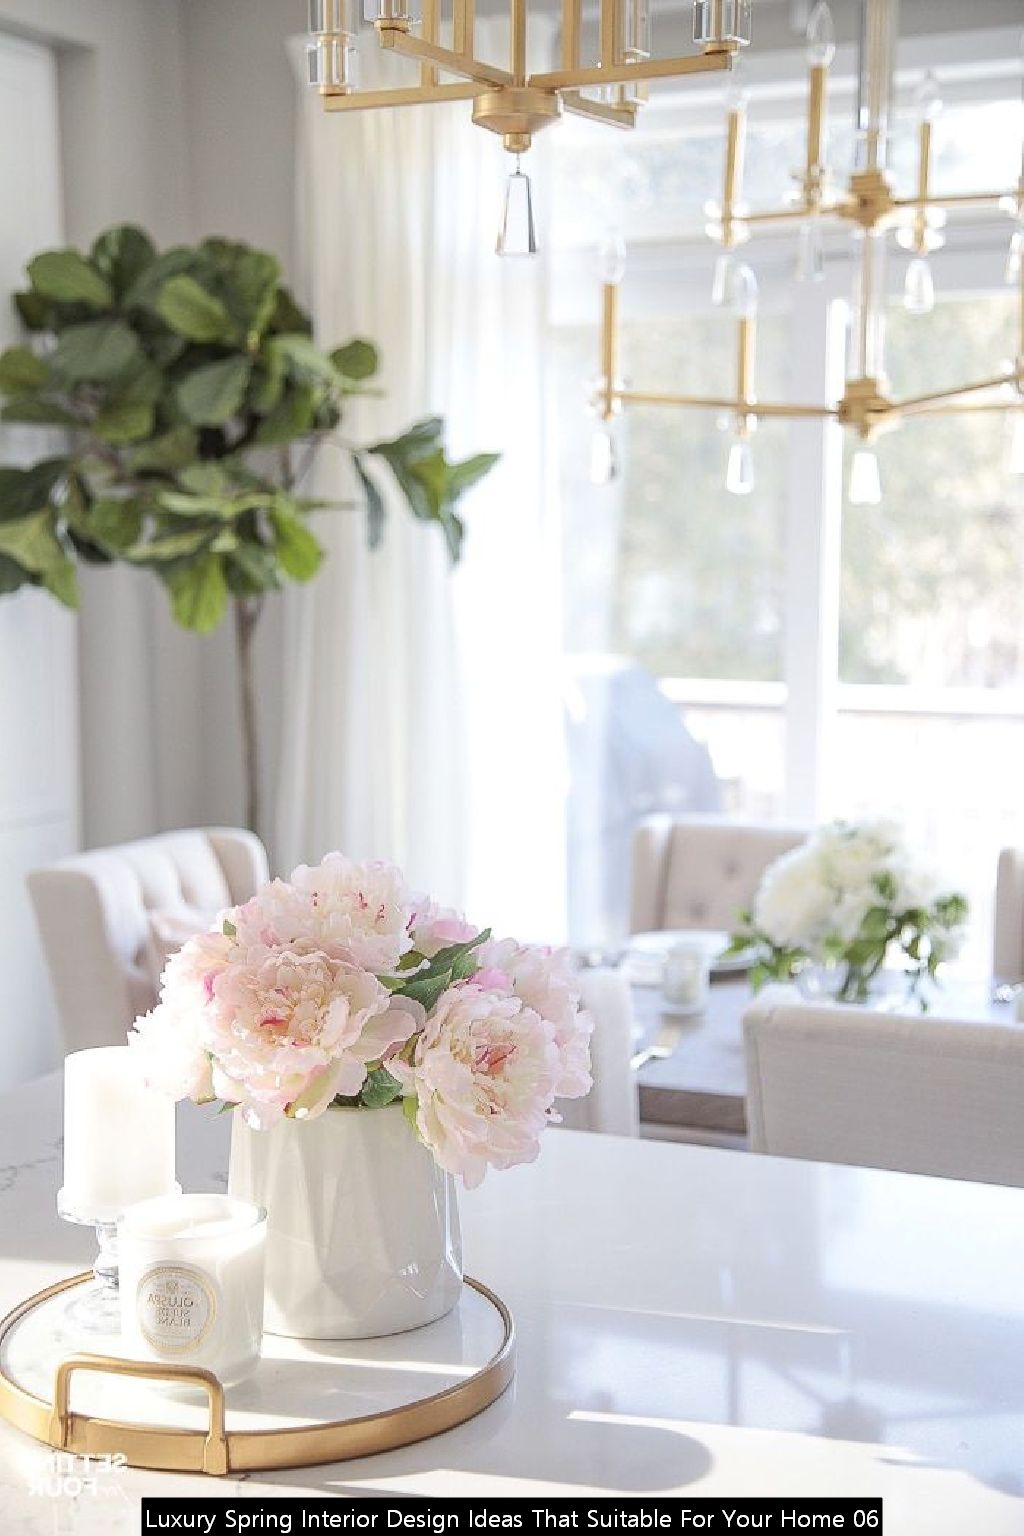 Luxury Spring Interior Design Ideas That Suitable For Your Home 06